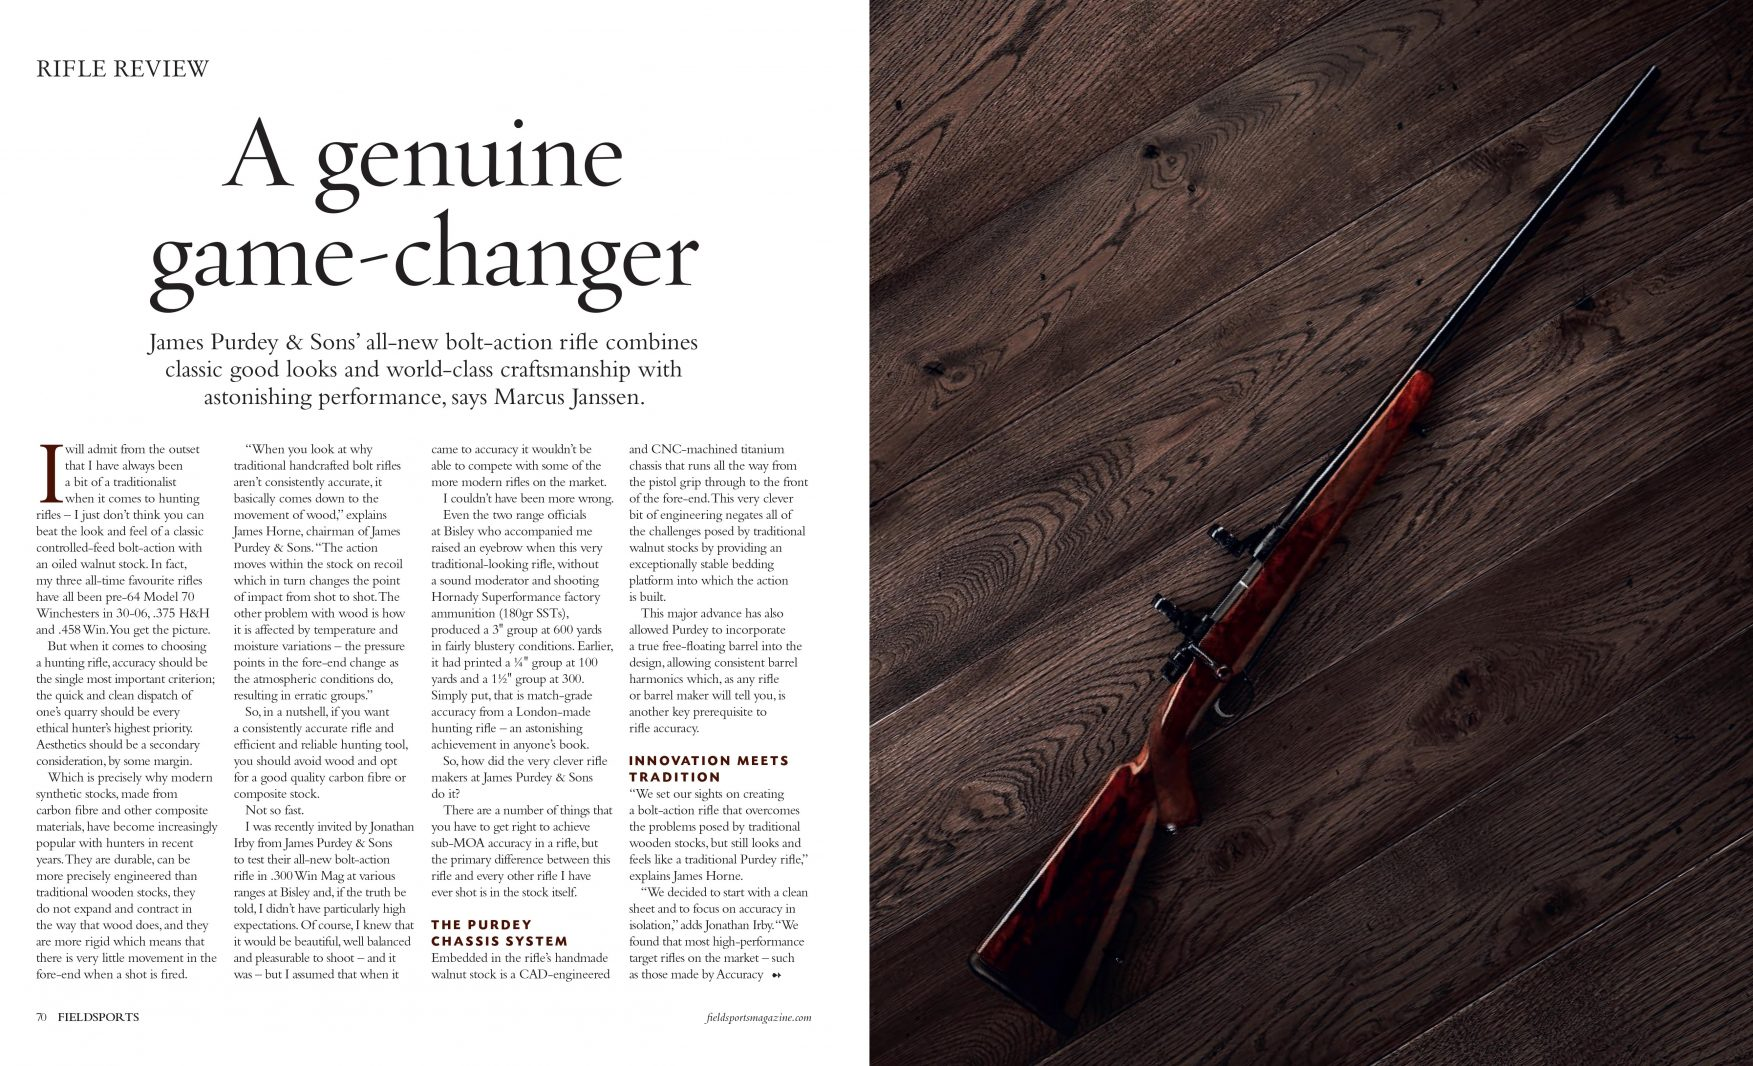 The New Bolt-Action Rifle | Purdey & Sons